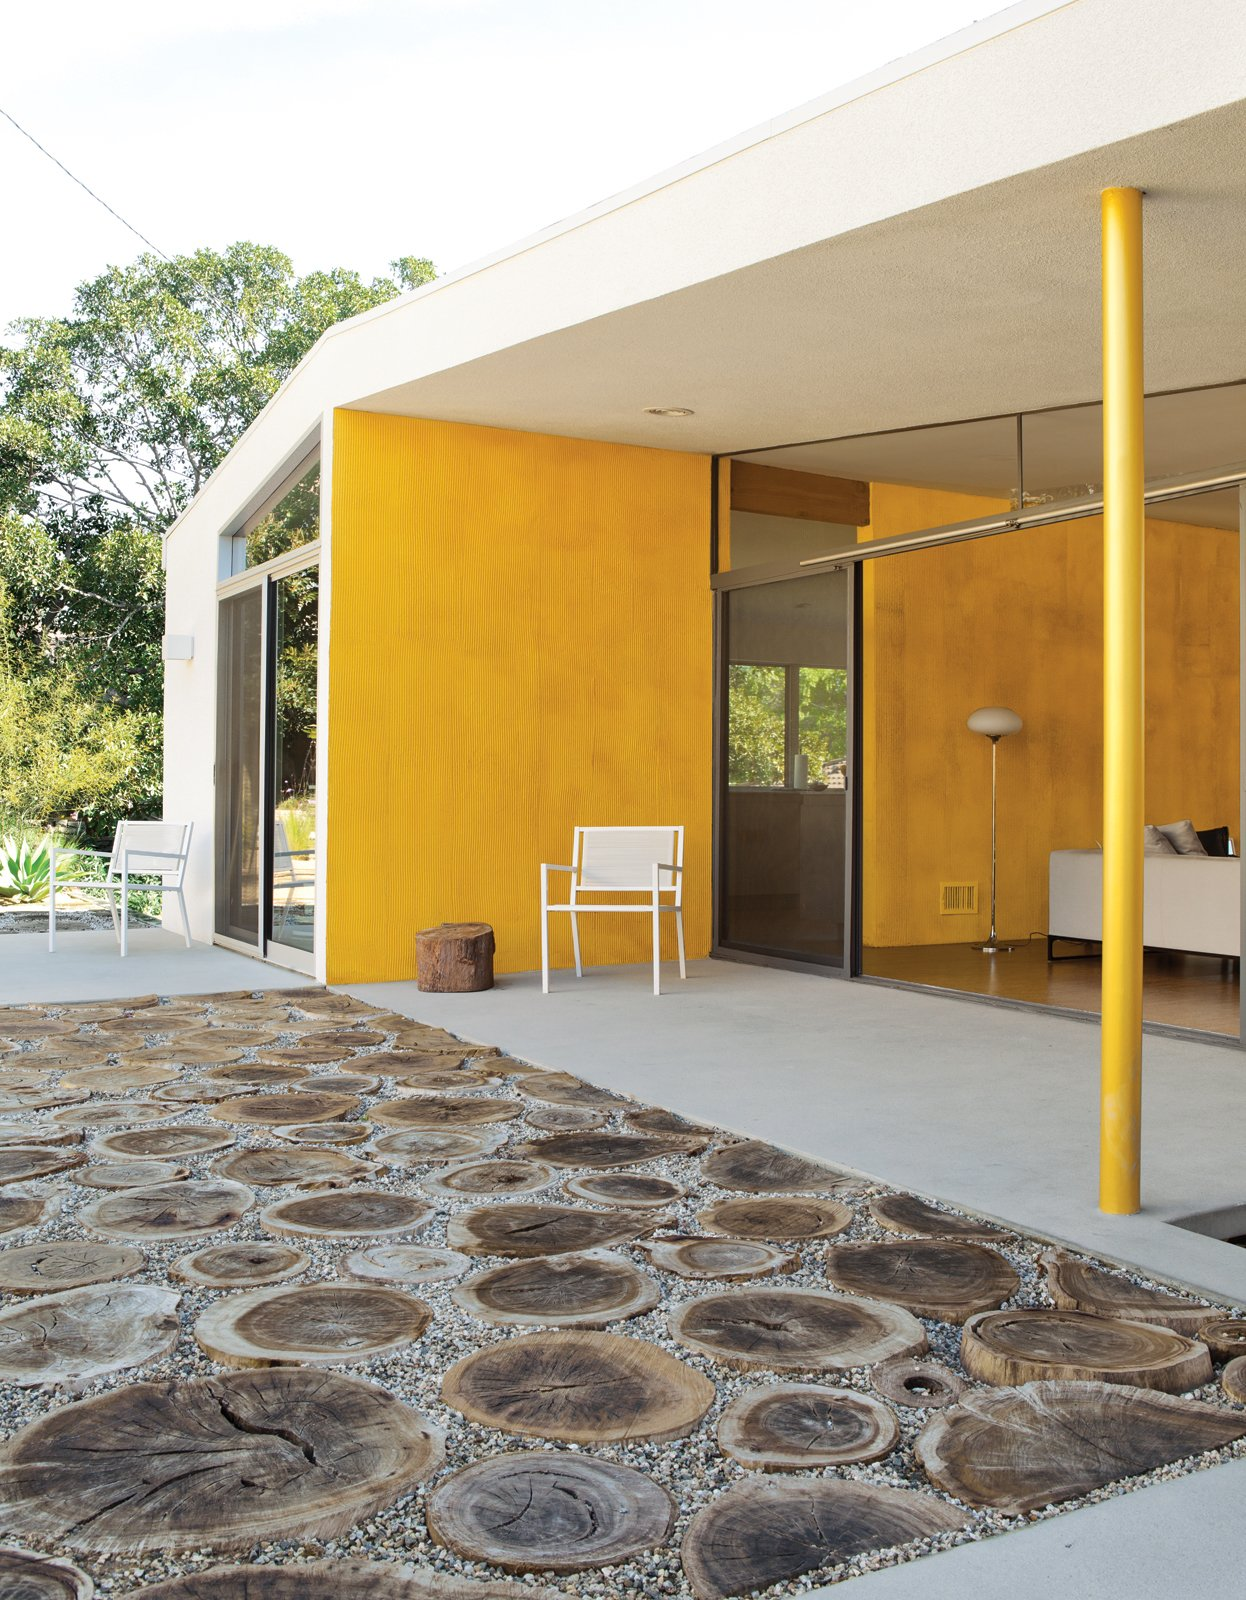 #color #yellow #minimal #backyard #patio #coveredpatio #exterior #outdoor #openair #renovation #LosAngeles #California #TaalmanKoch